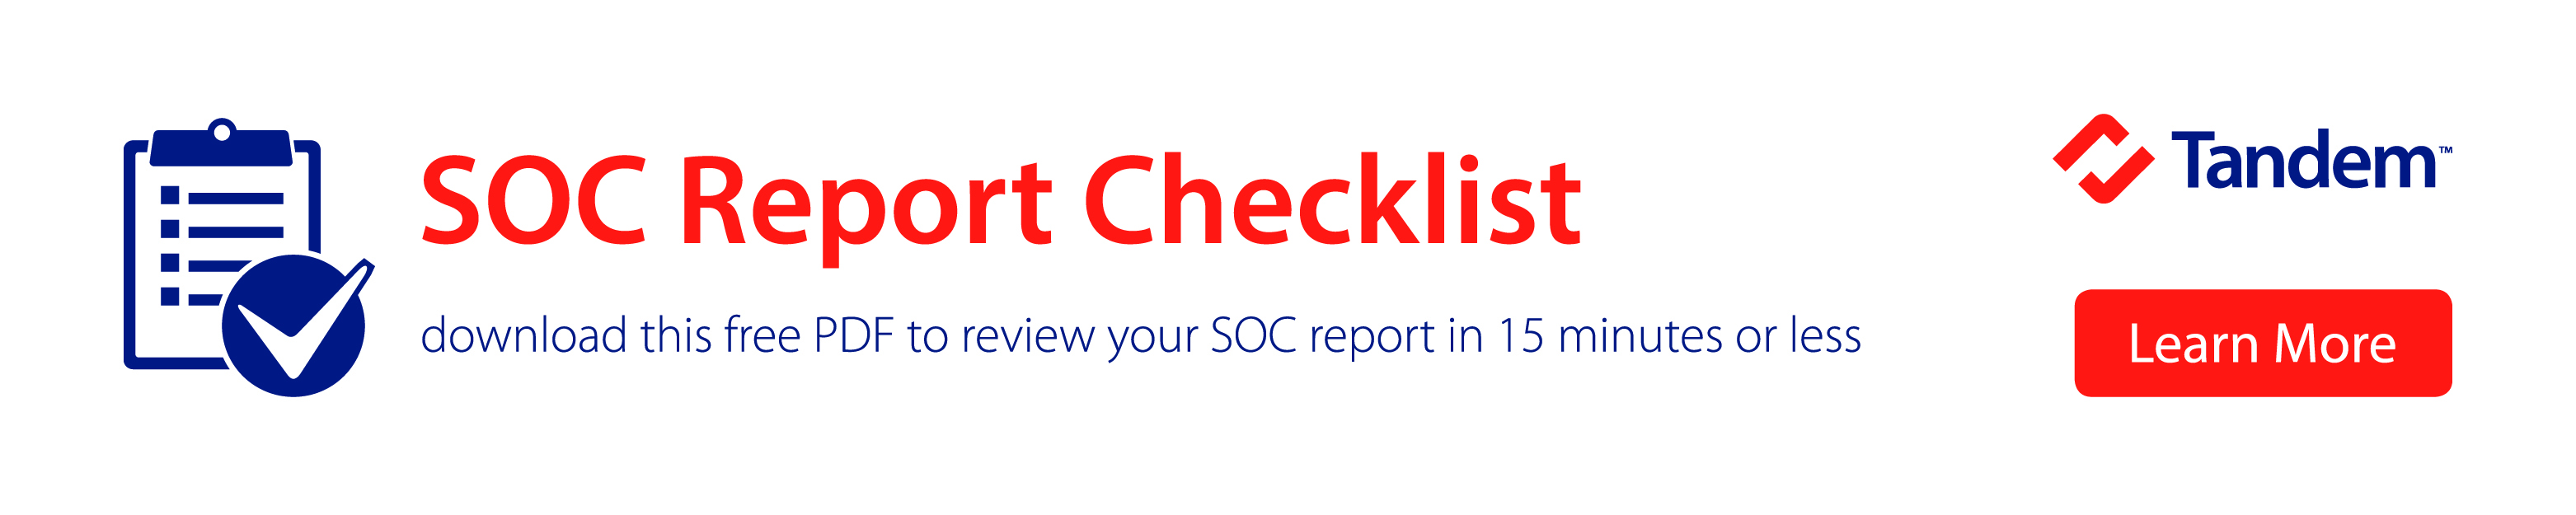 SOC Report Review Checklist